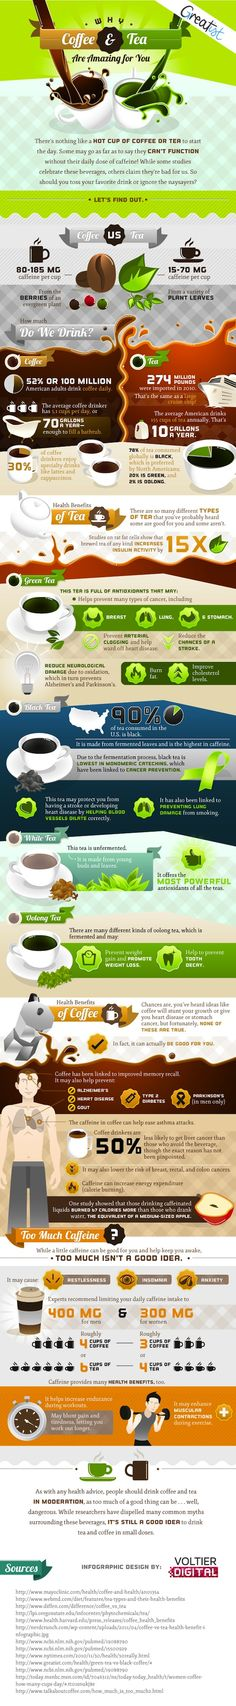 most teas encourage weight loss, while drinking a cup of coffee before the gym can help benefit your workout! good stuff to know.